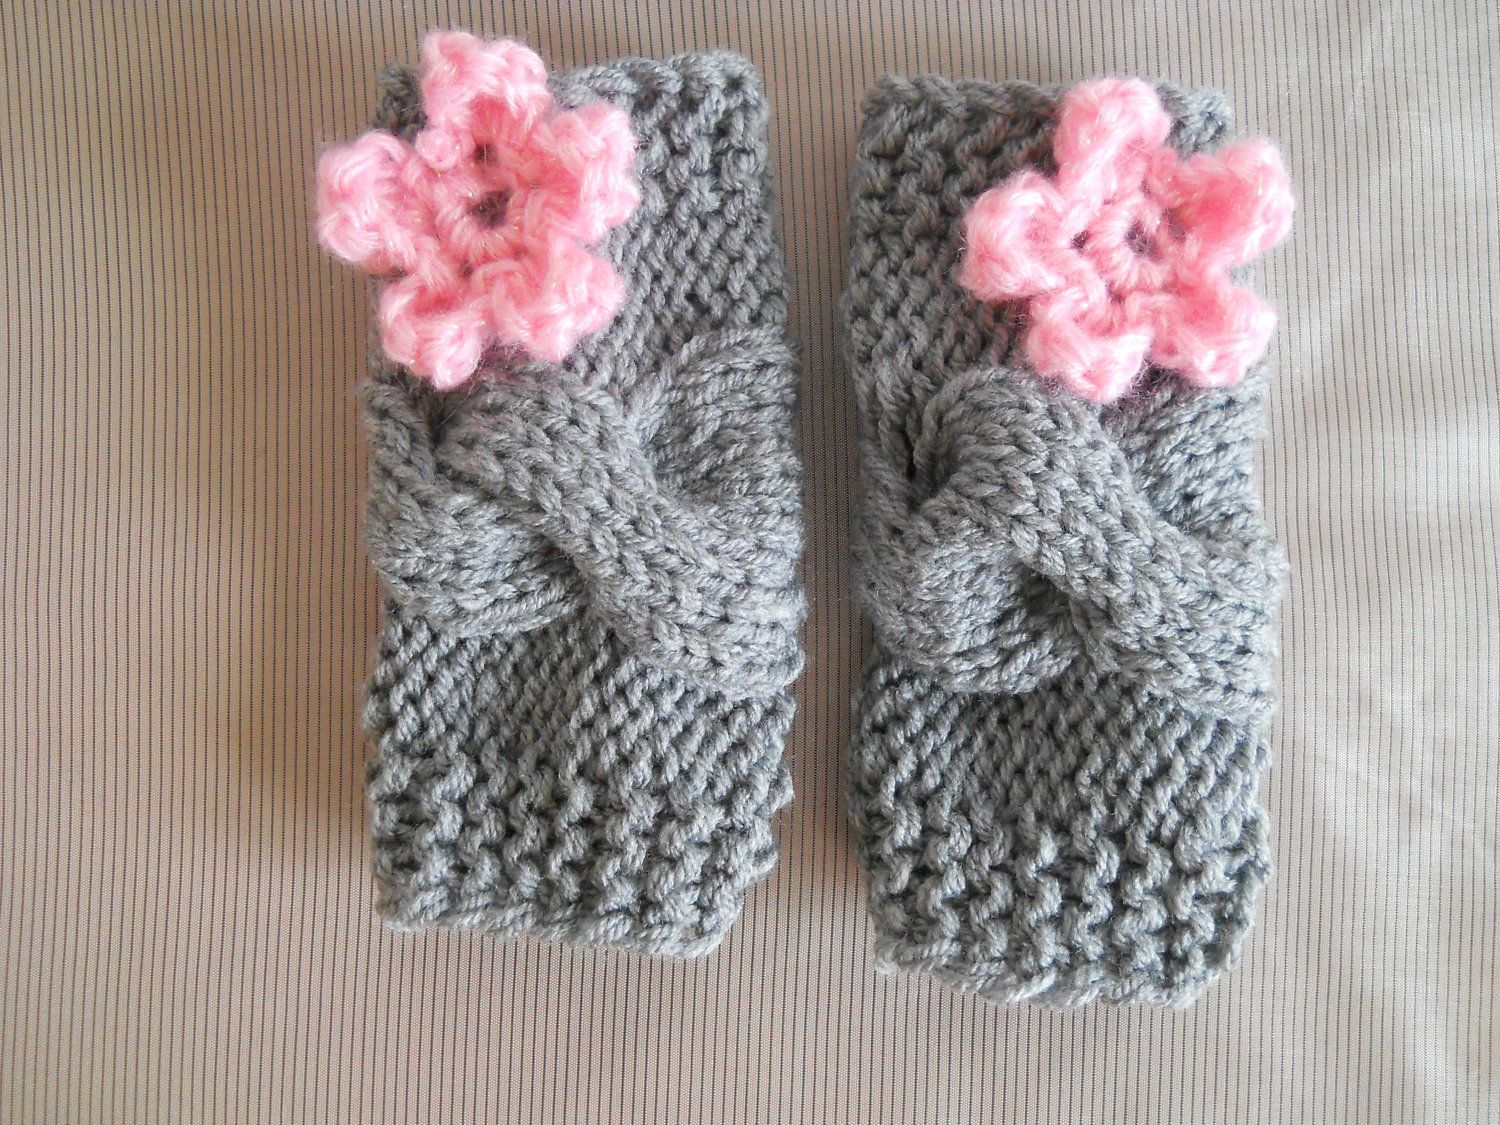 Baby crochet leg warmers ive got to learn to crochet or at baby crochet leg warmers ive got to learn to crochet or at bankloansurffo Image collections